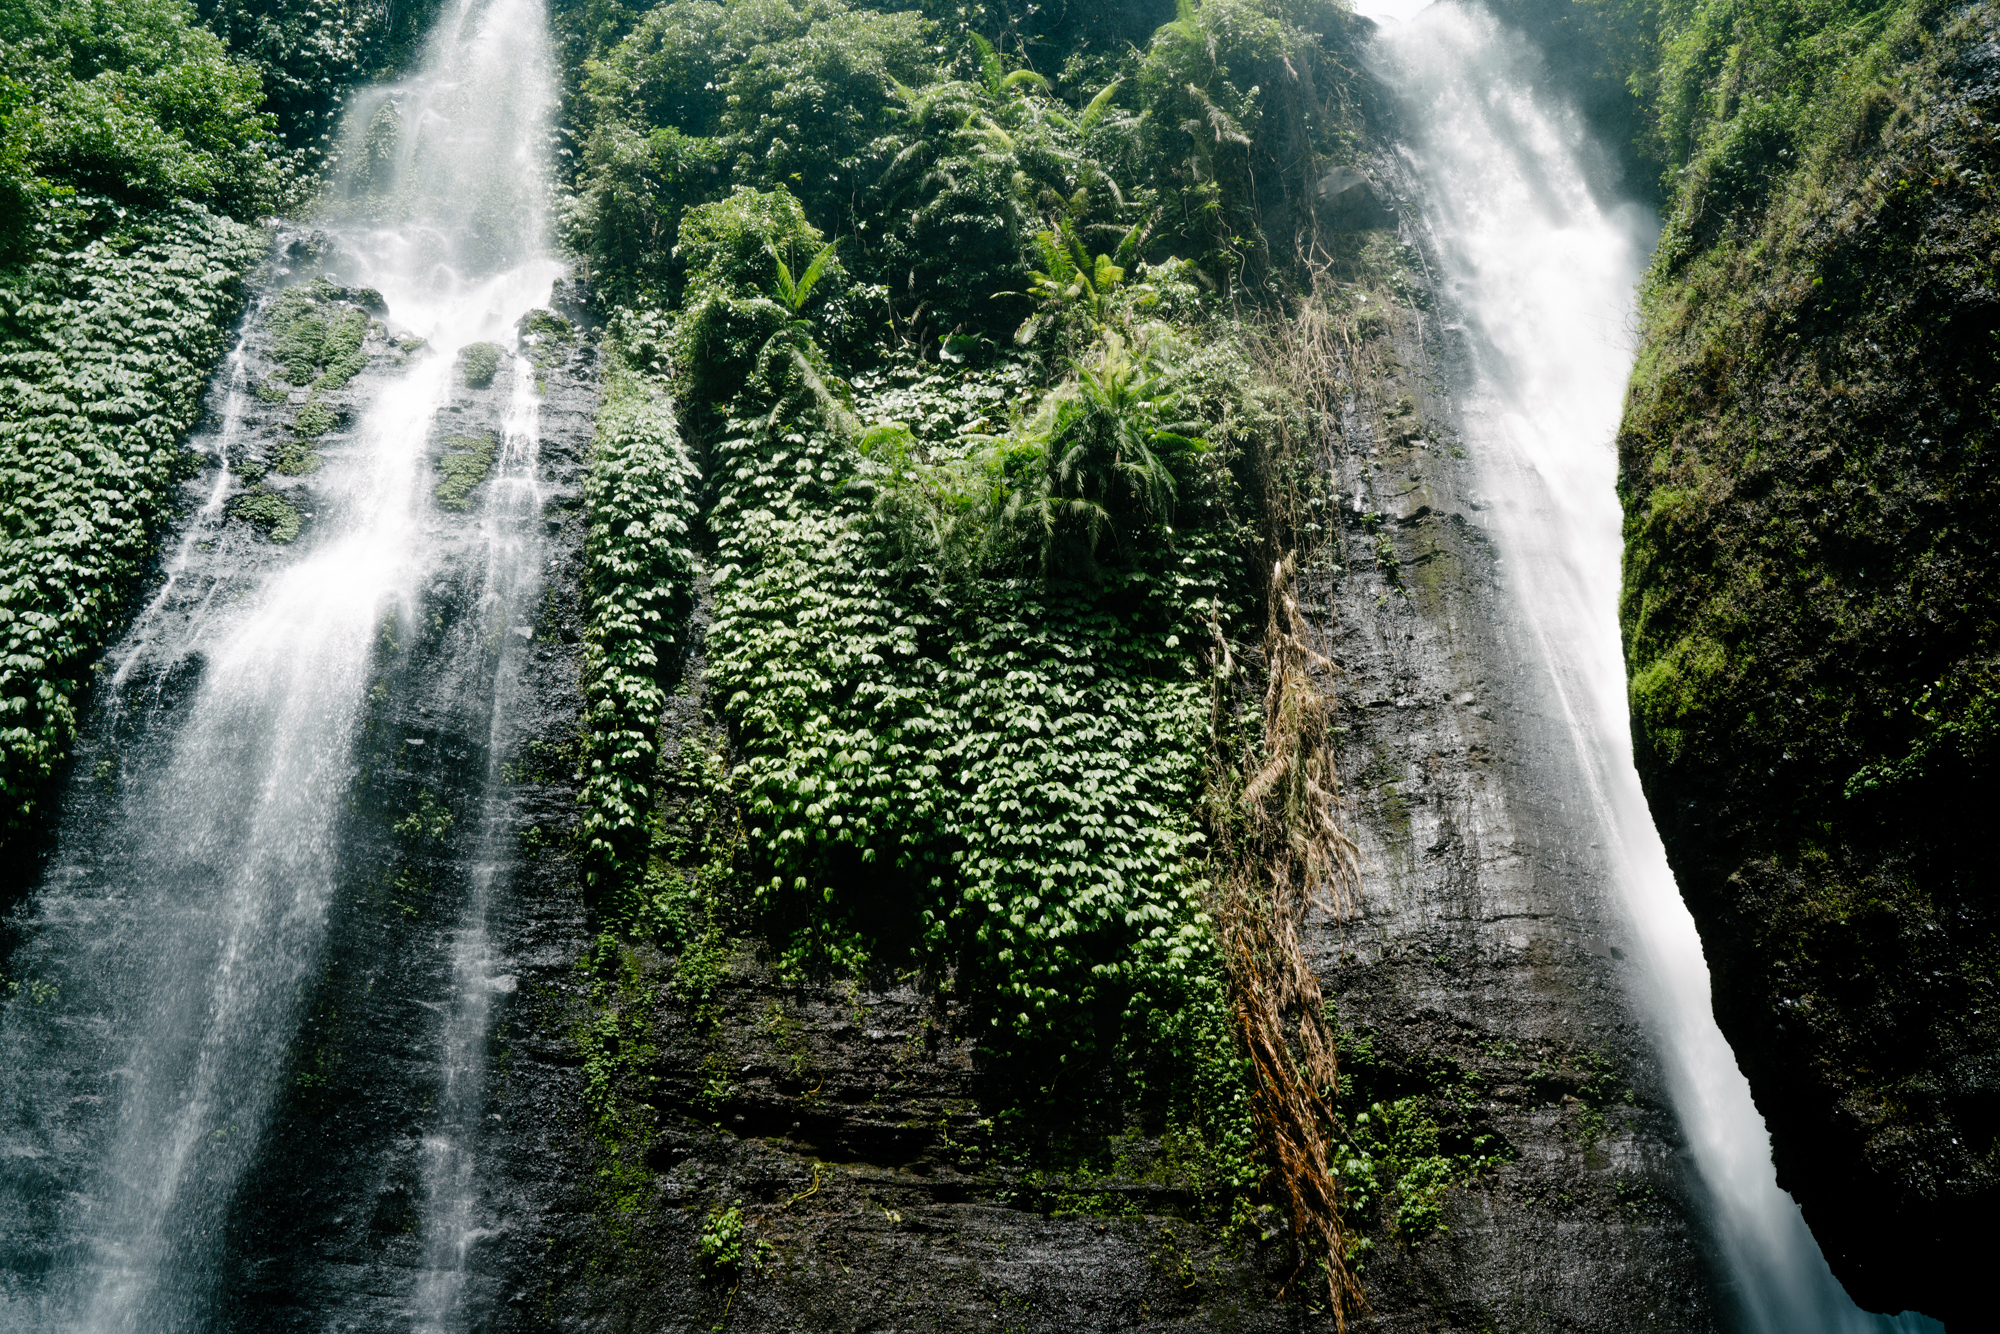 Jungle views in Bali | Never Settle Travel